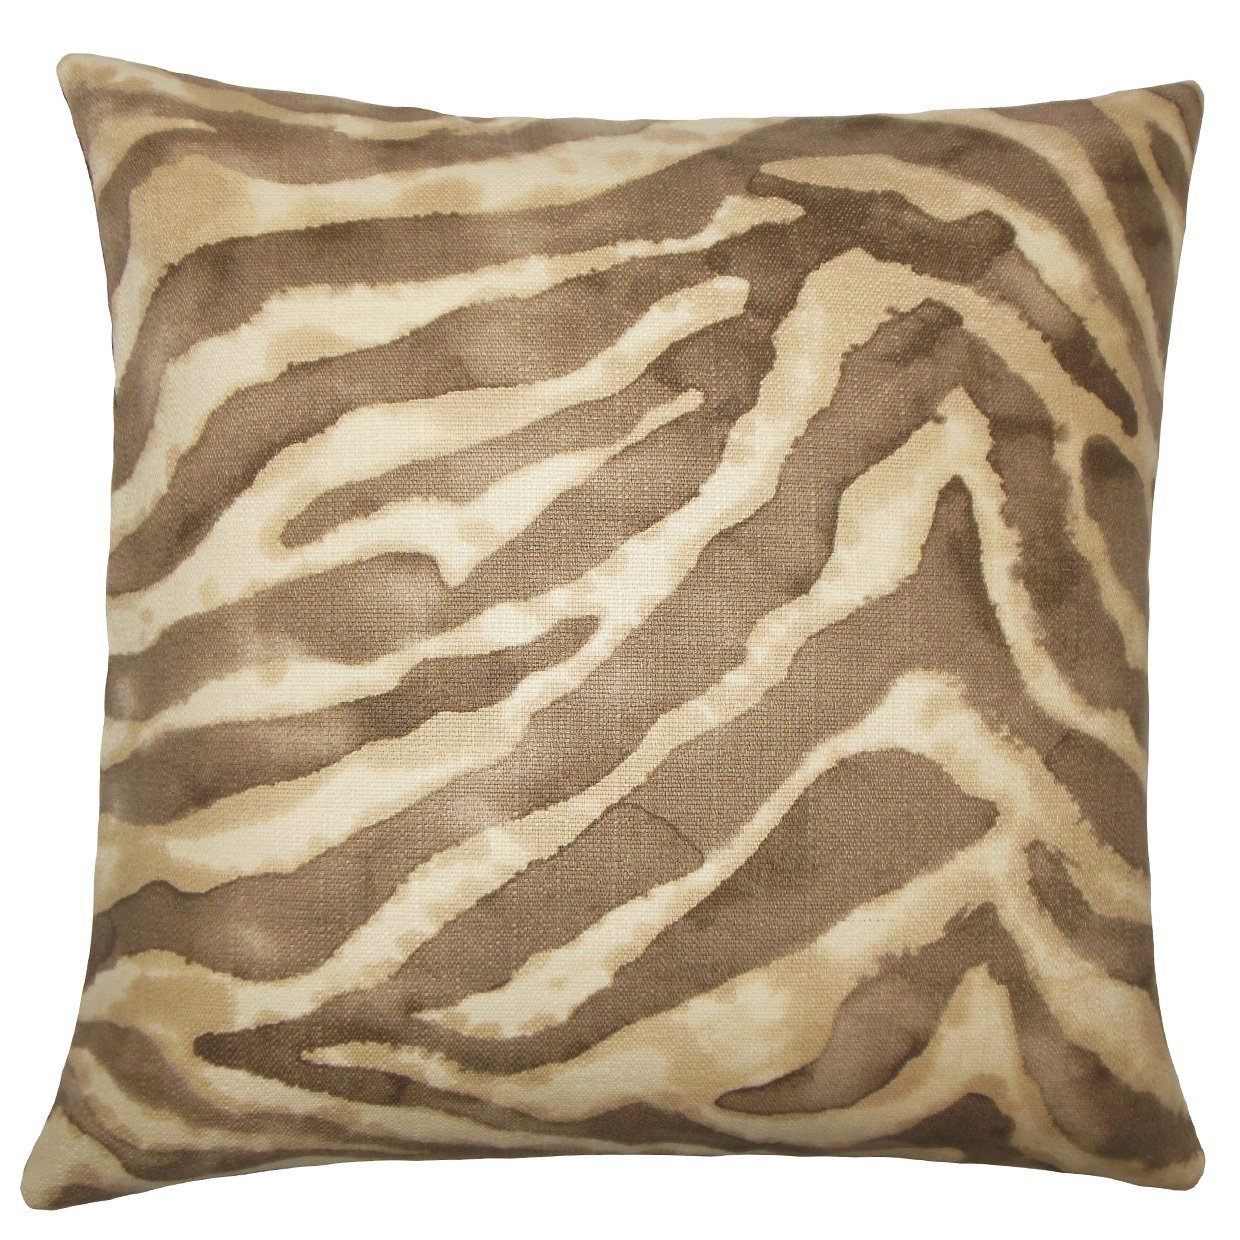 The Pillow Collection Zelig Animal Print Bedding Sham Pink Euro//26 x 26